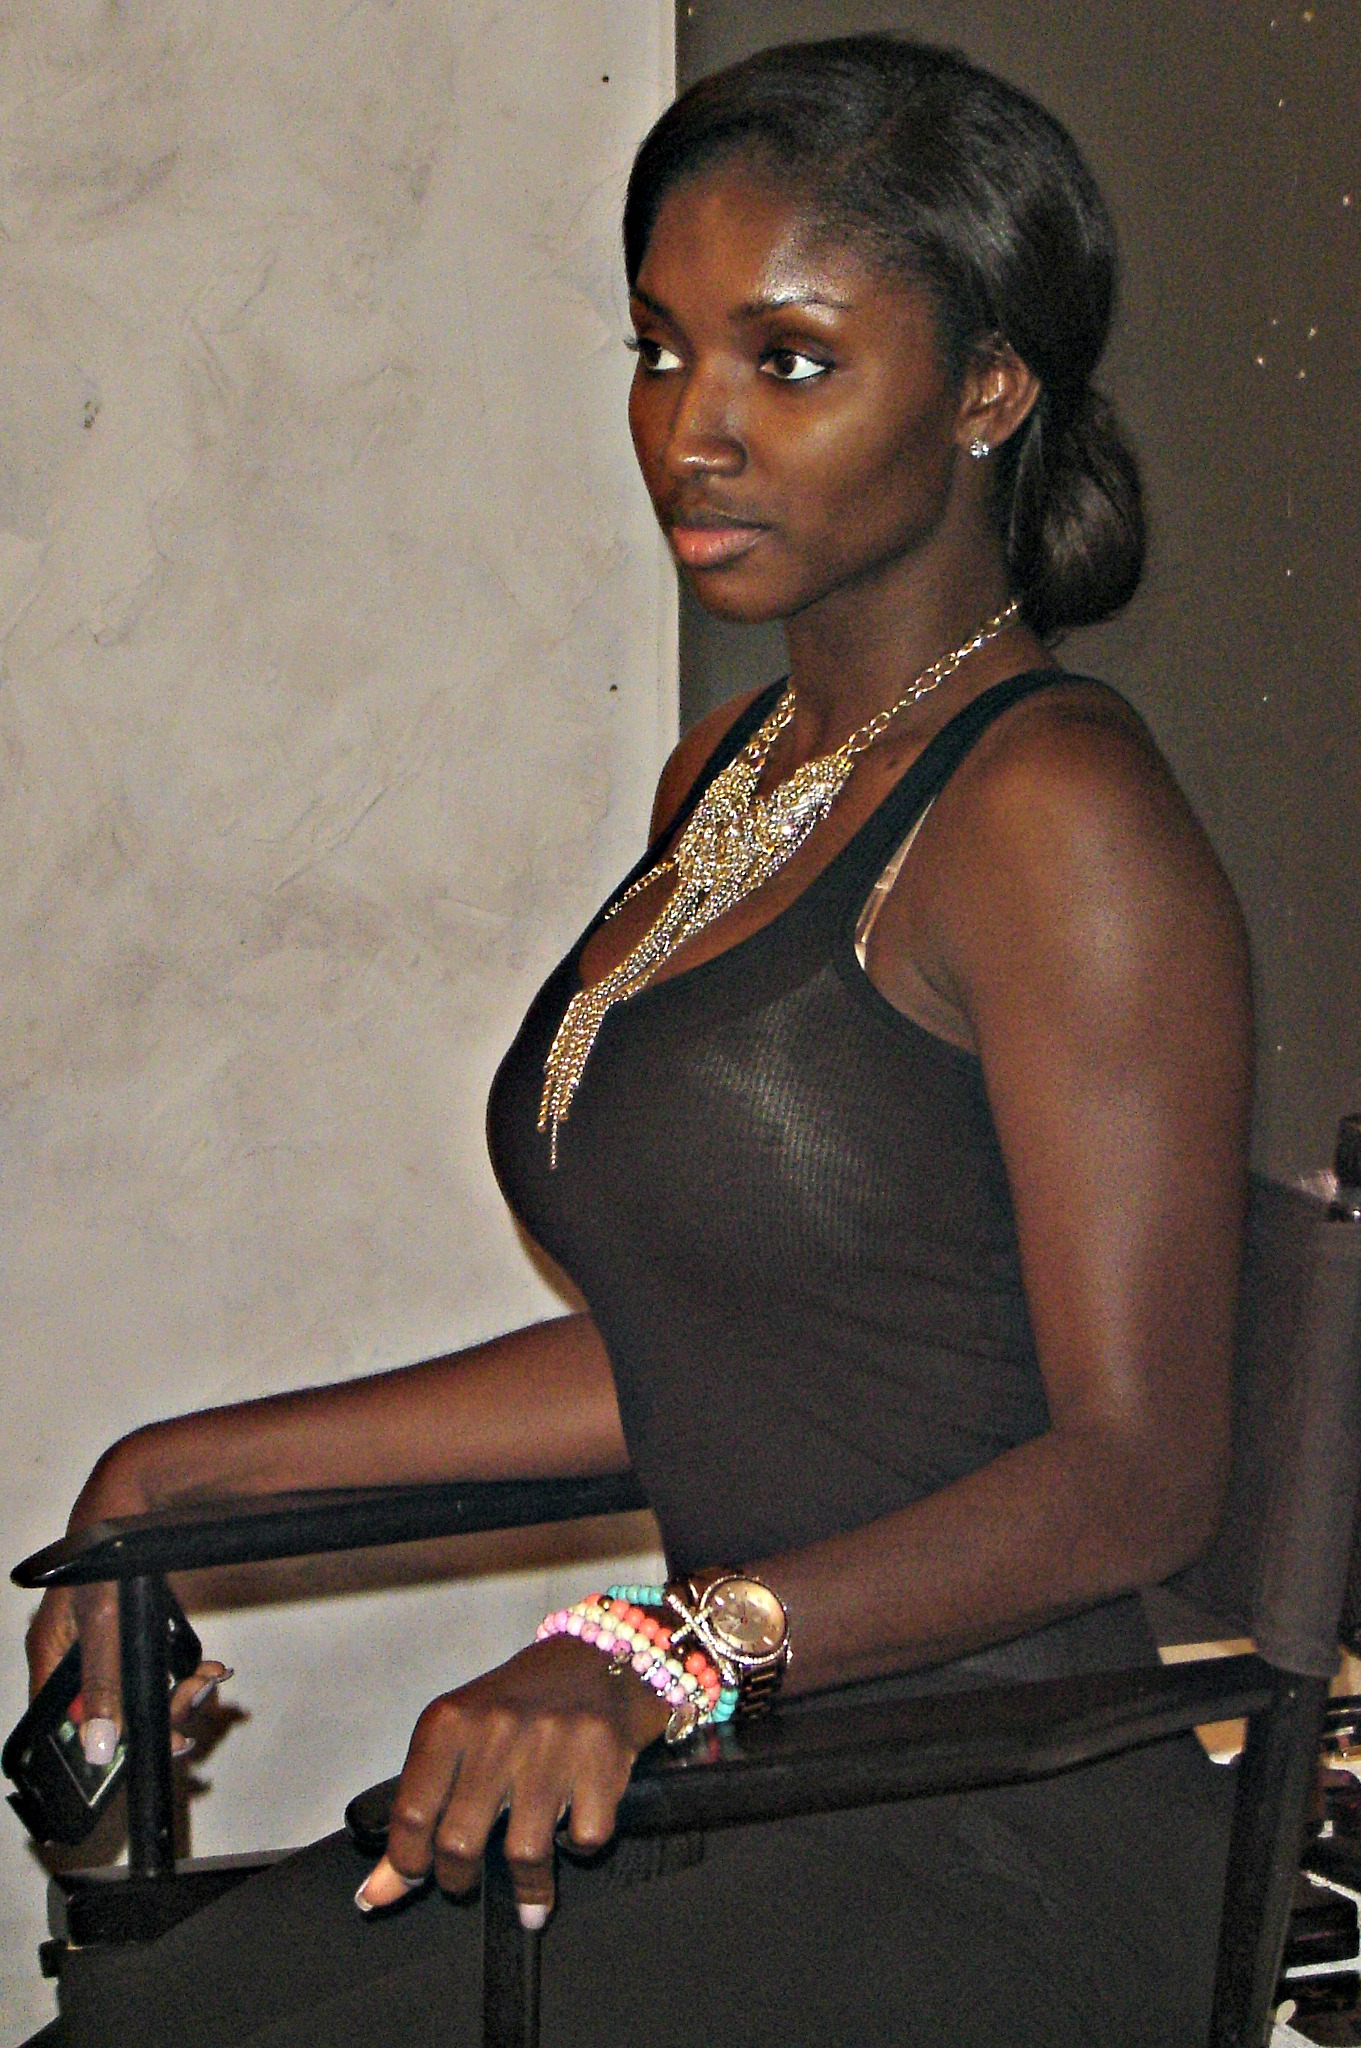 Saisha Beecham, Makeup Workshop, Makeup, Black Model